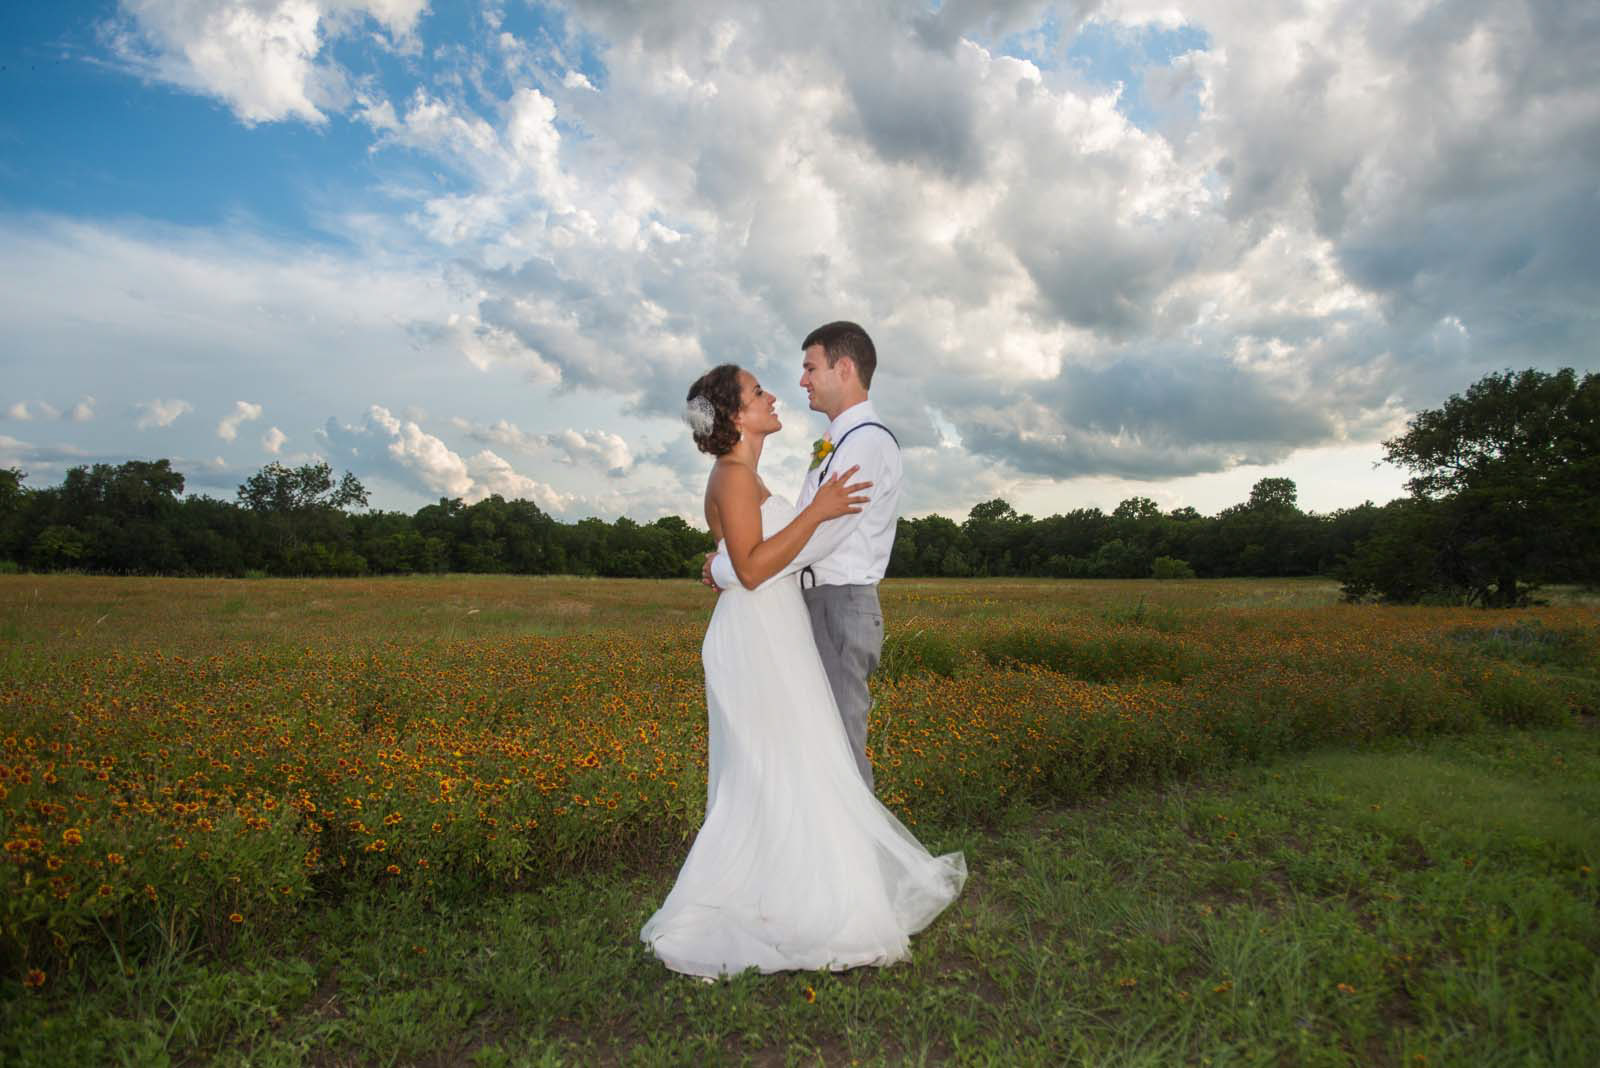 austin_wedding_photographer-62